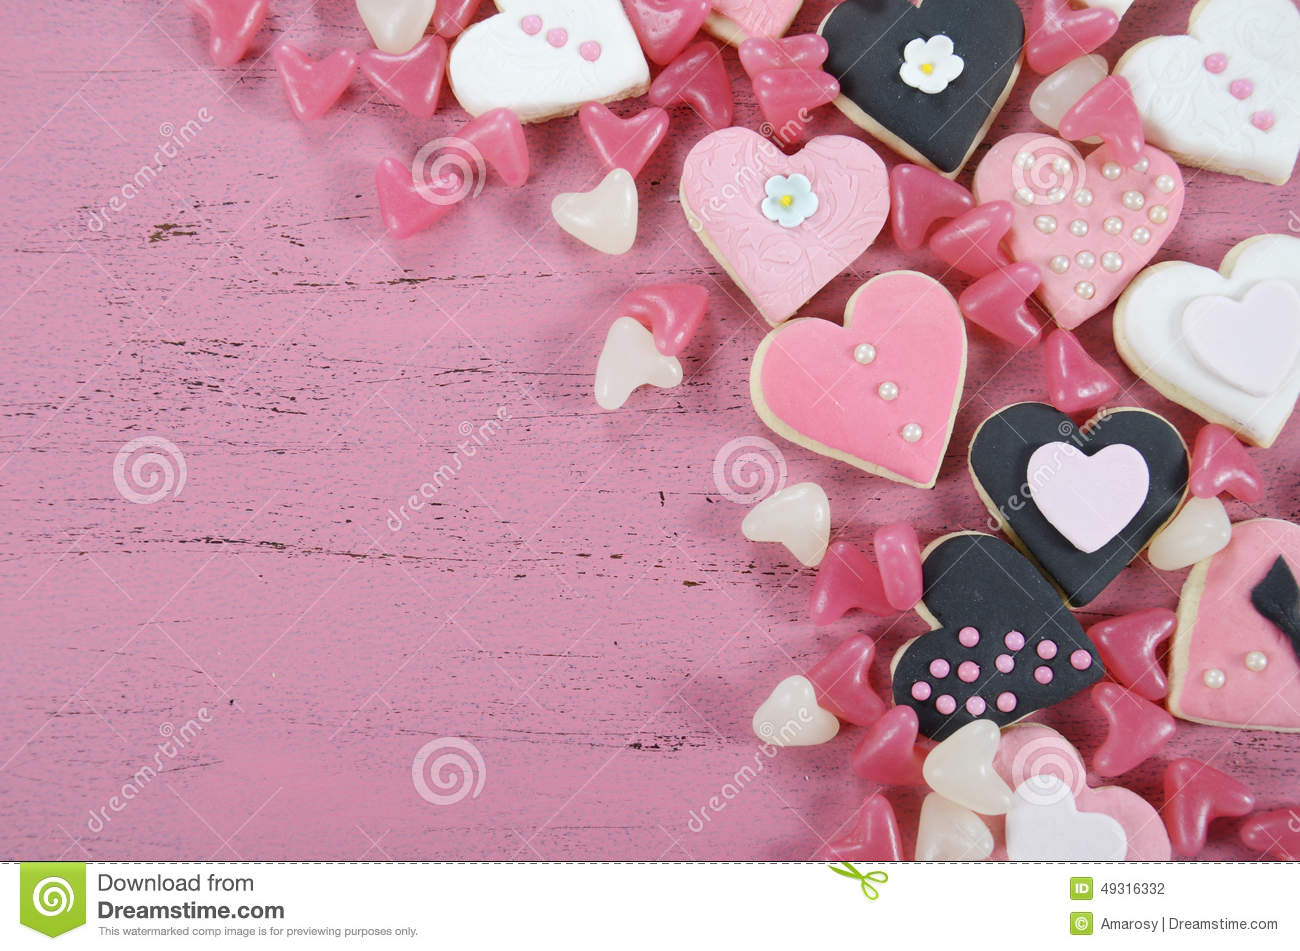 Romantic Heart Shape Pink, White And Black Cookies And ...